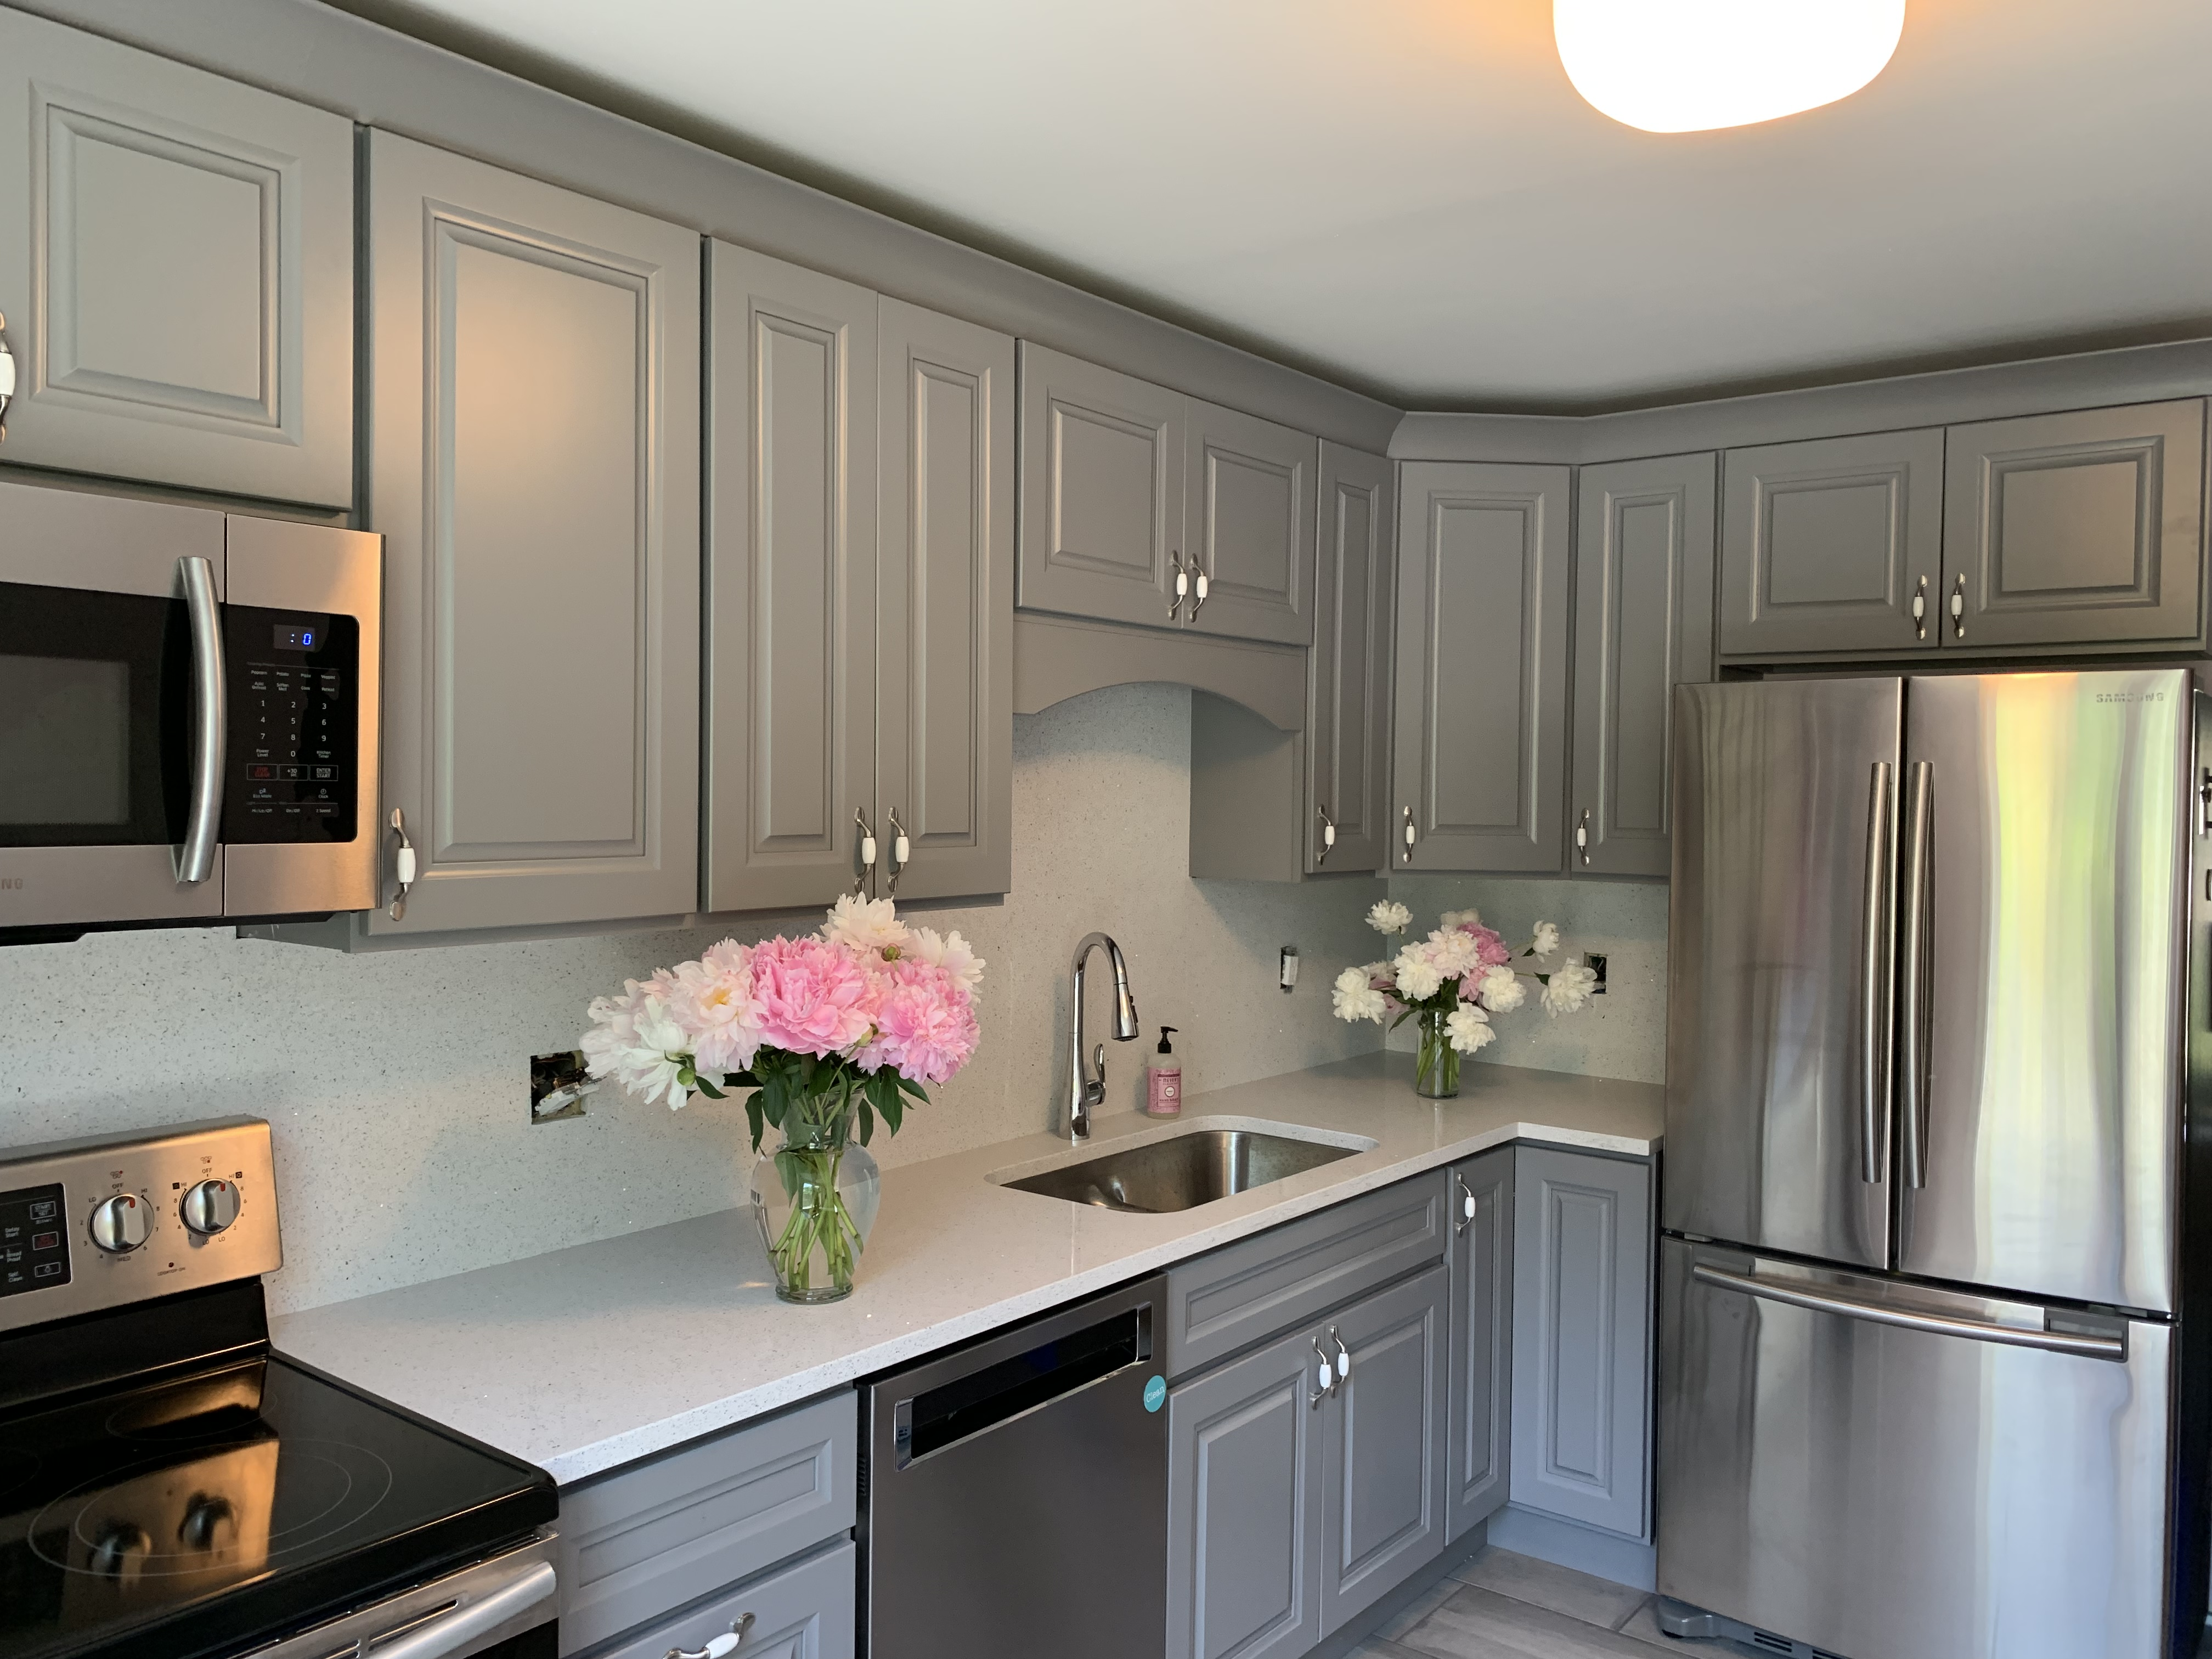 KOB Kitchen | Home | Quality cabinets for your dream kitchen